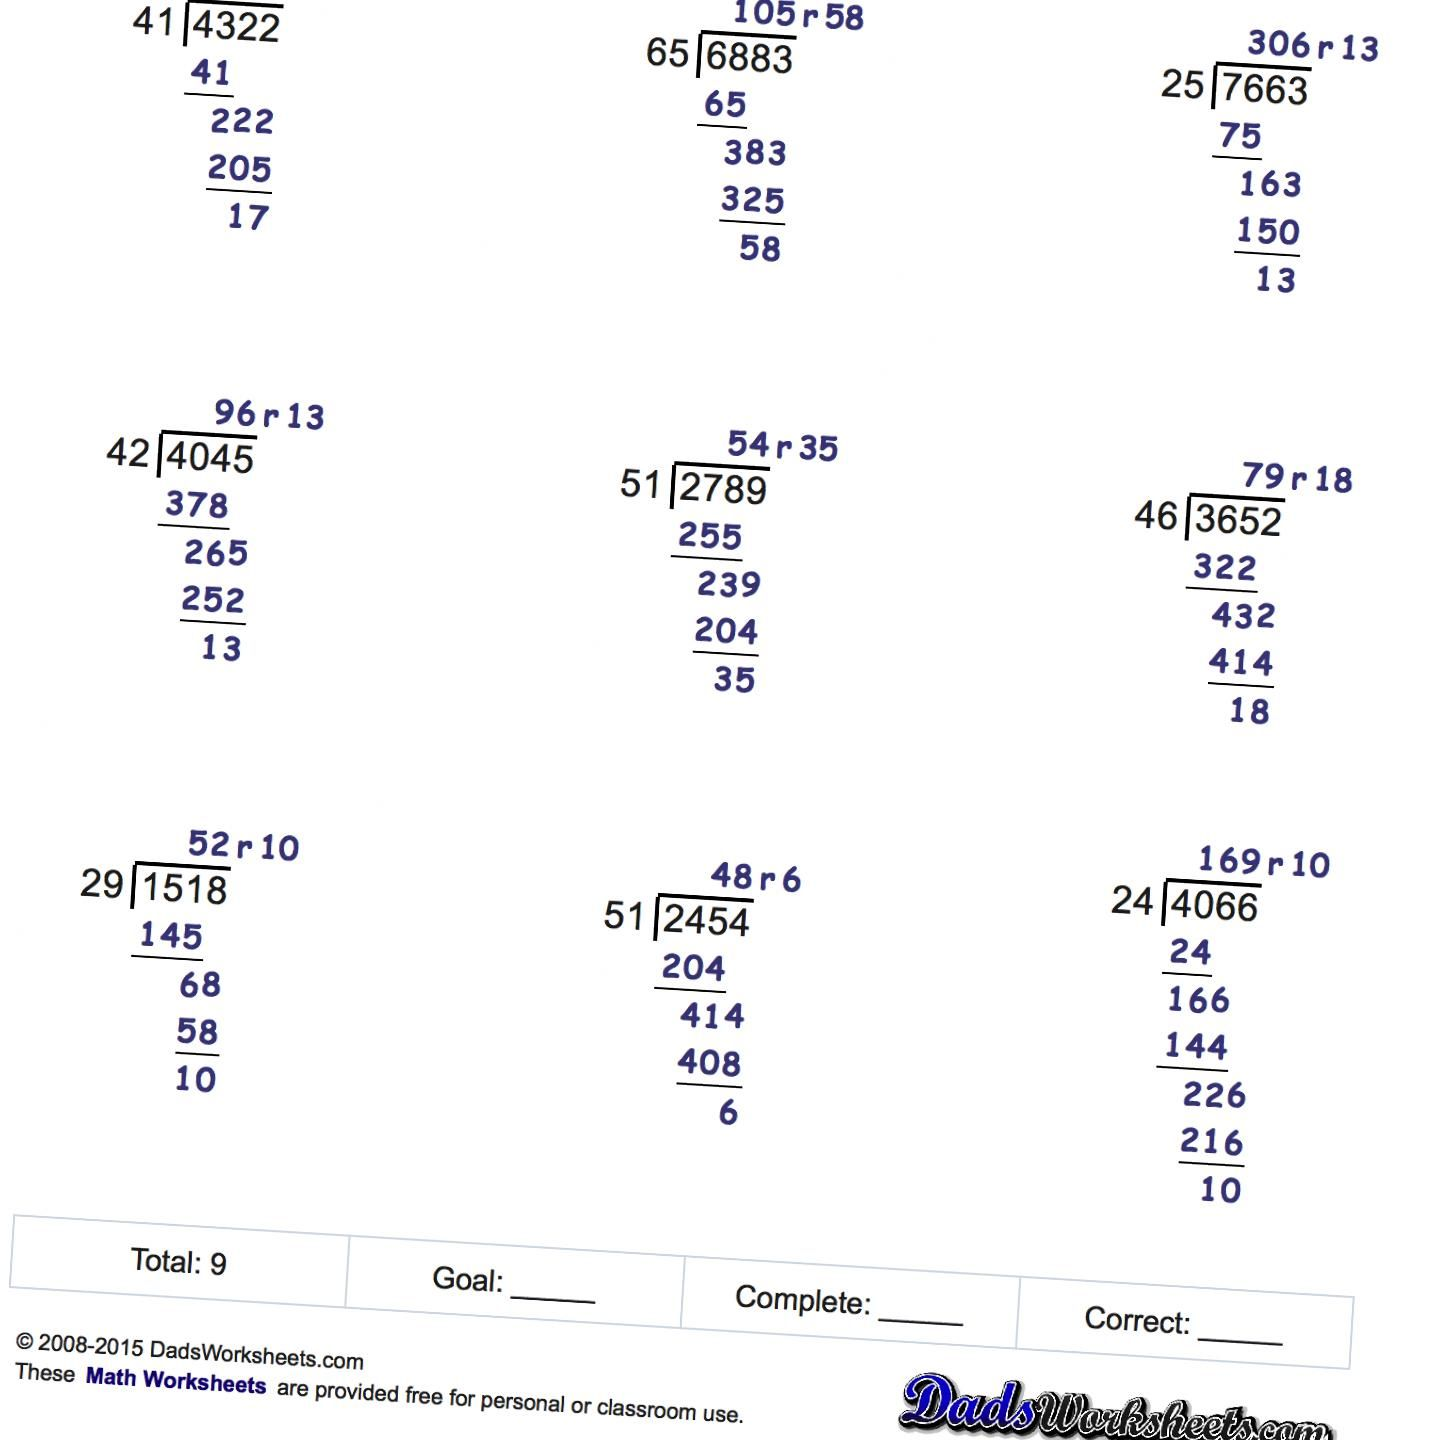 worksheet Division Without Remainders Worksheets free printable long division worksheets with multiple digit divisors and without remainders